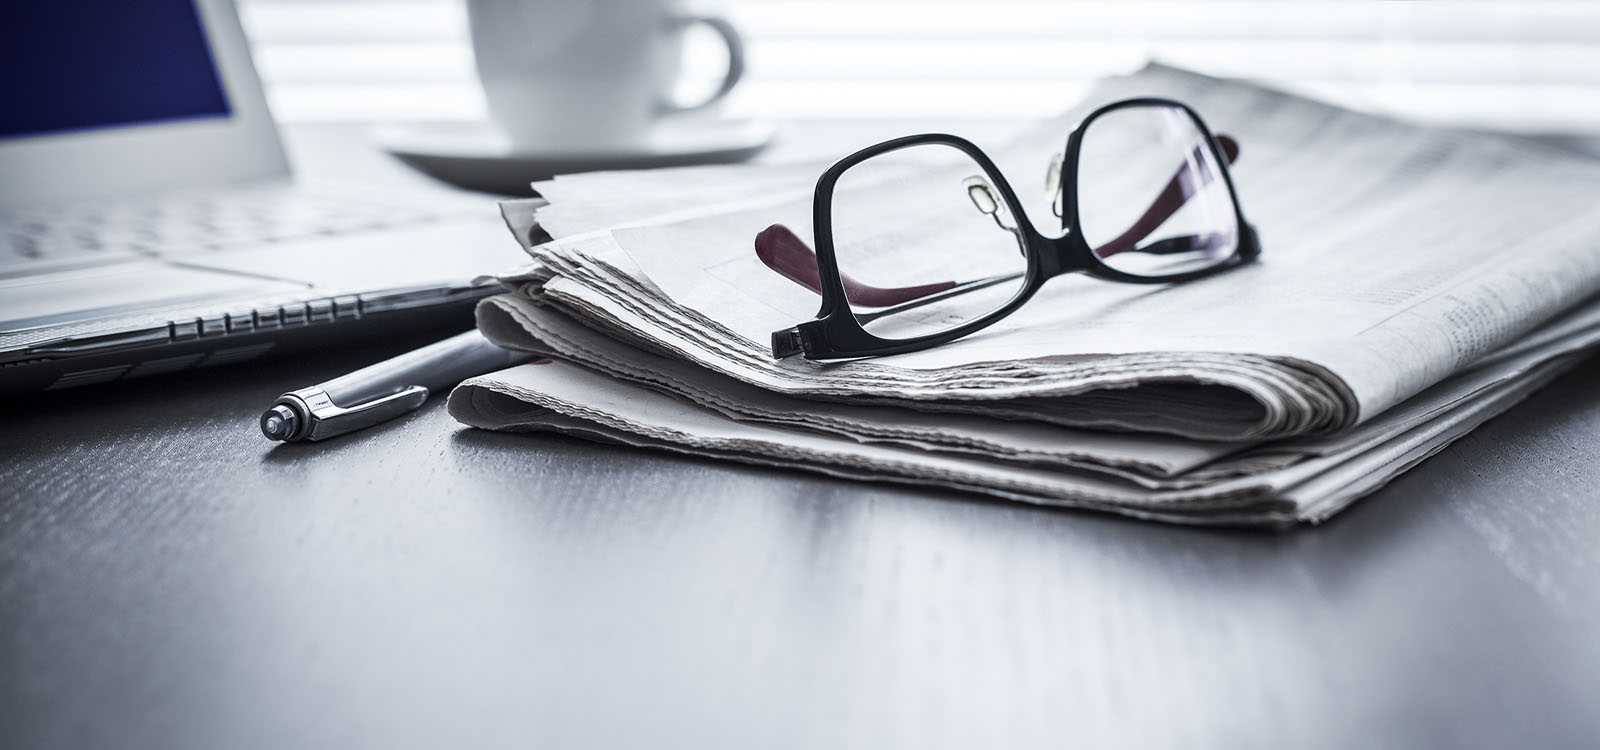 Glasses, computer and newspaper